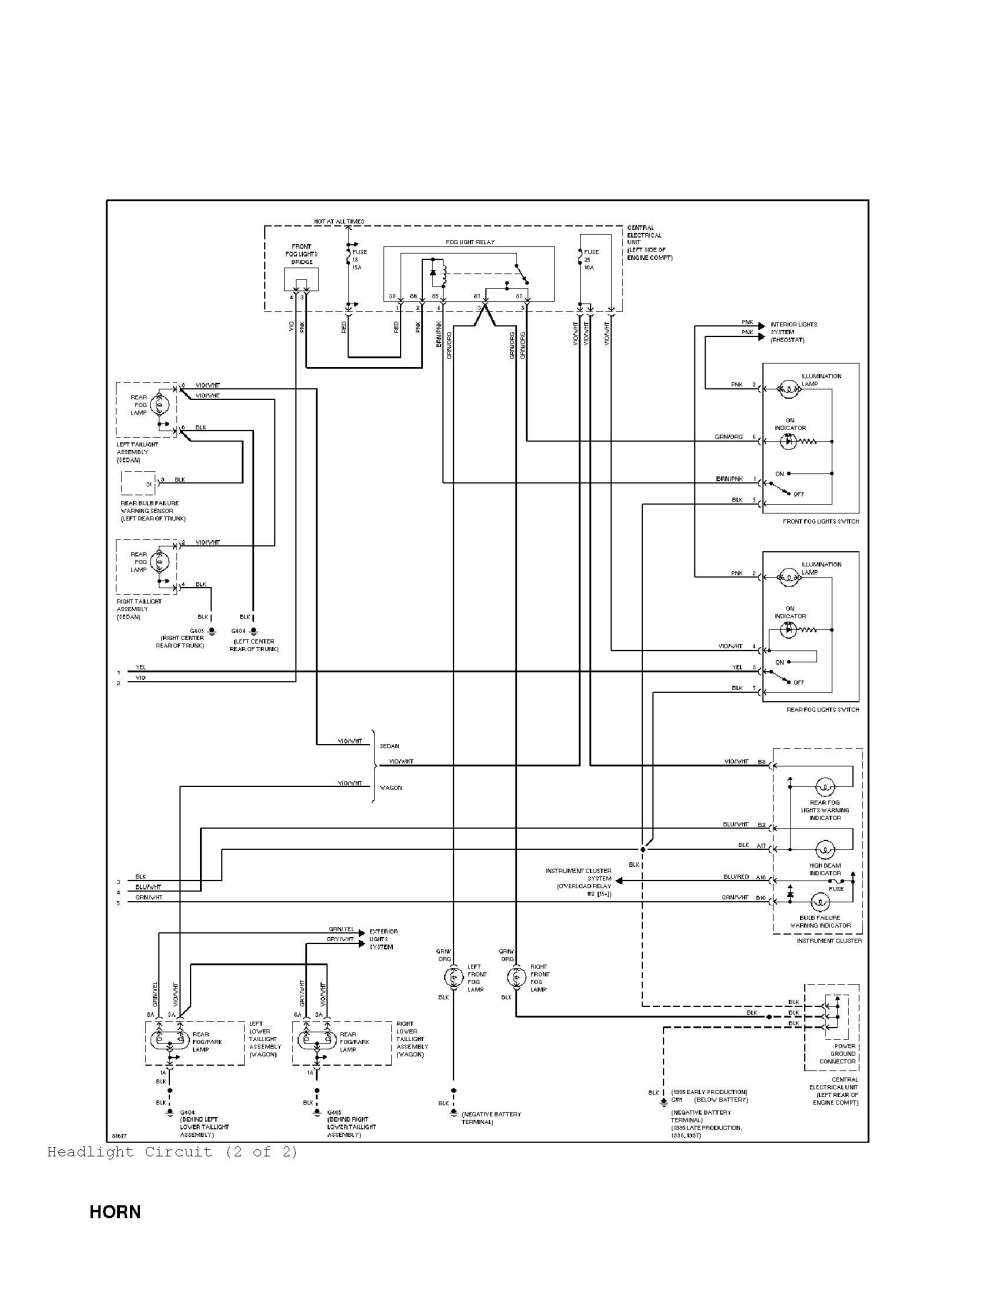 medium resolution of fog light installation page 2 cosmetic and detailing systemwiringdiagrams jpg here are the wiring diagrams for